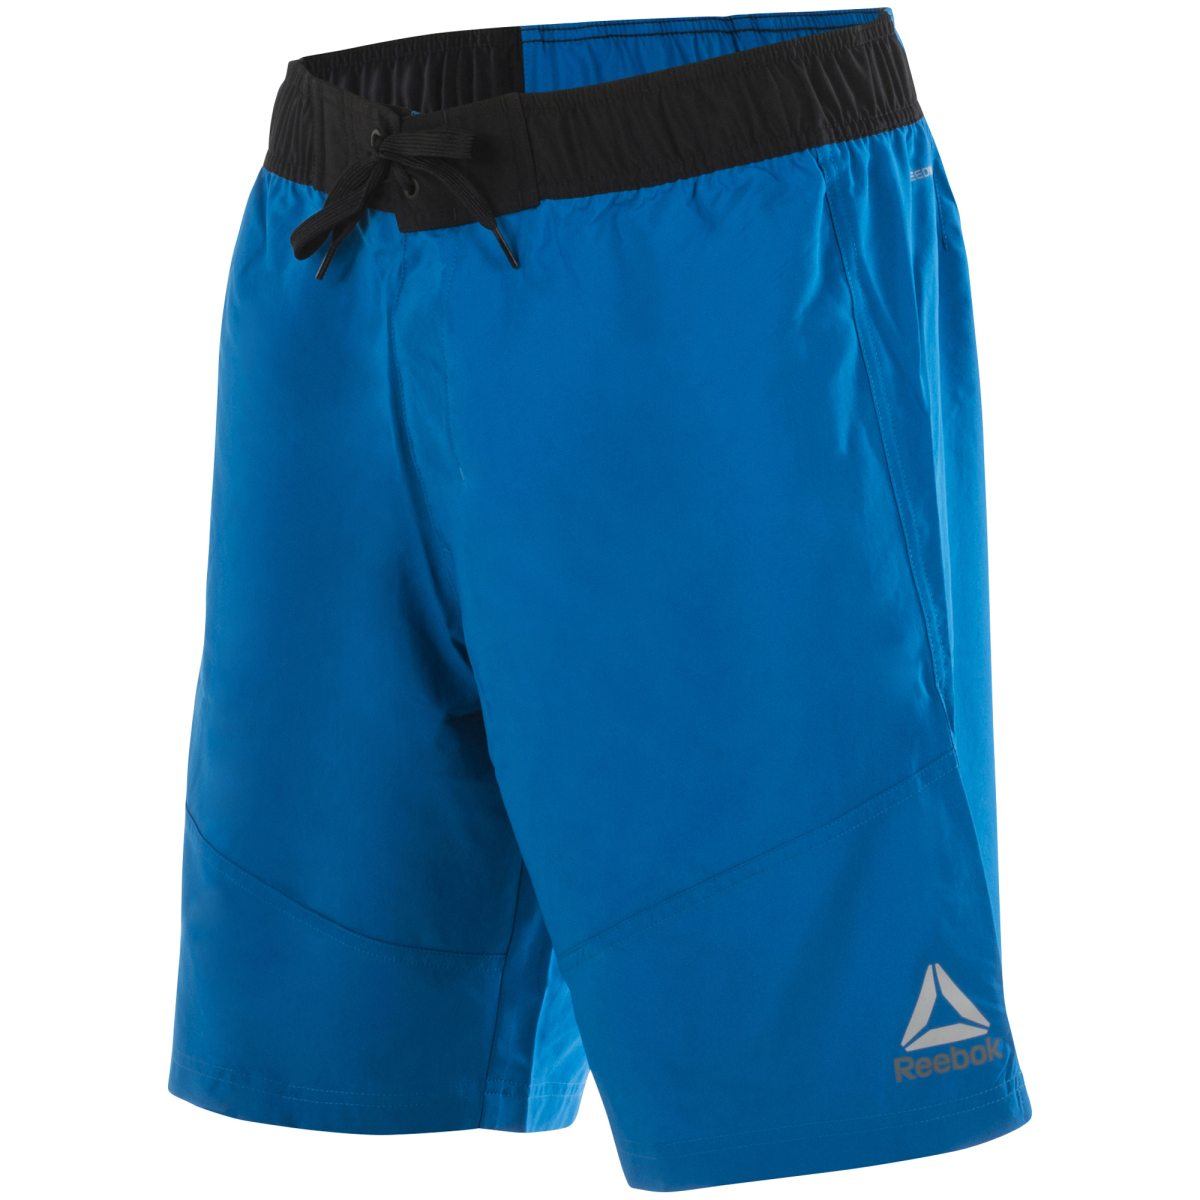 d895b869 Reebok Workout Ready Board Short Stacked, treningsshorts herre ...